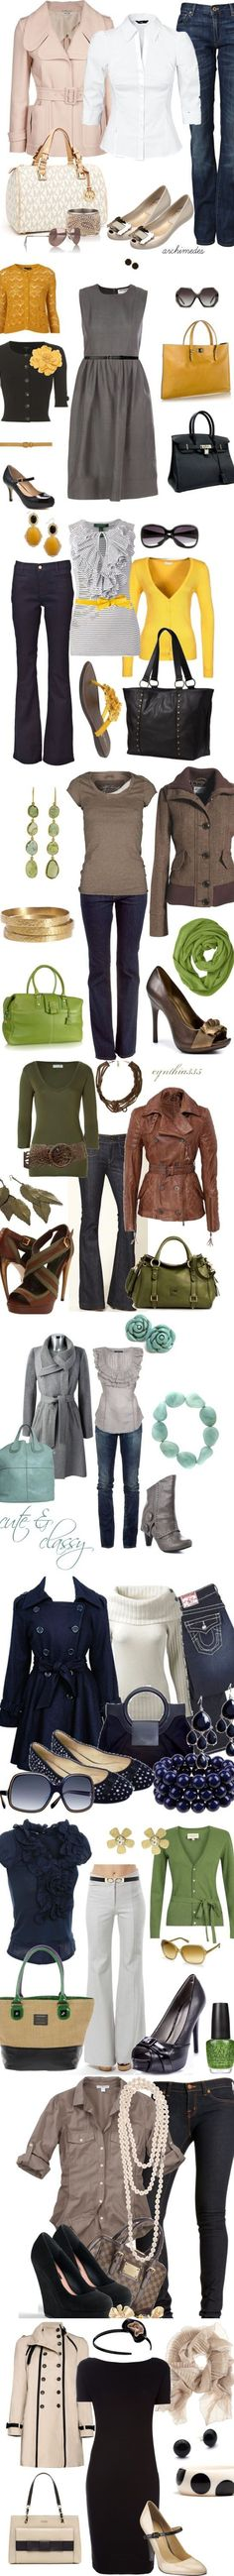 Classy and Chic Fall Looks